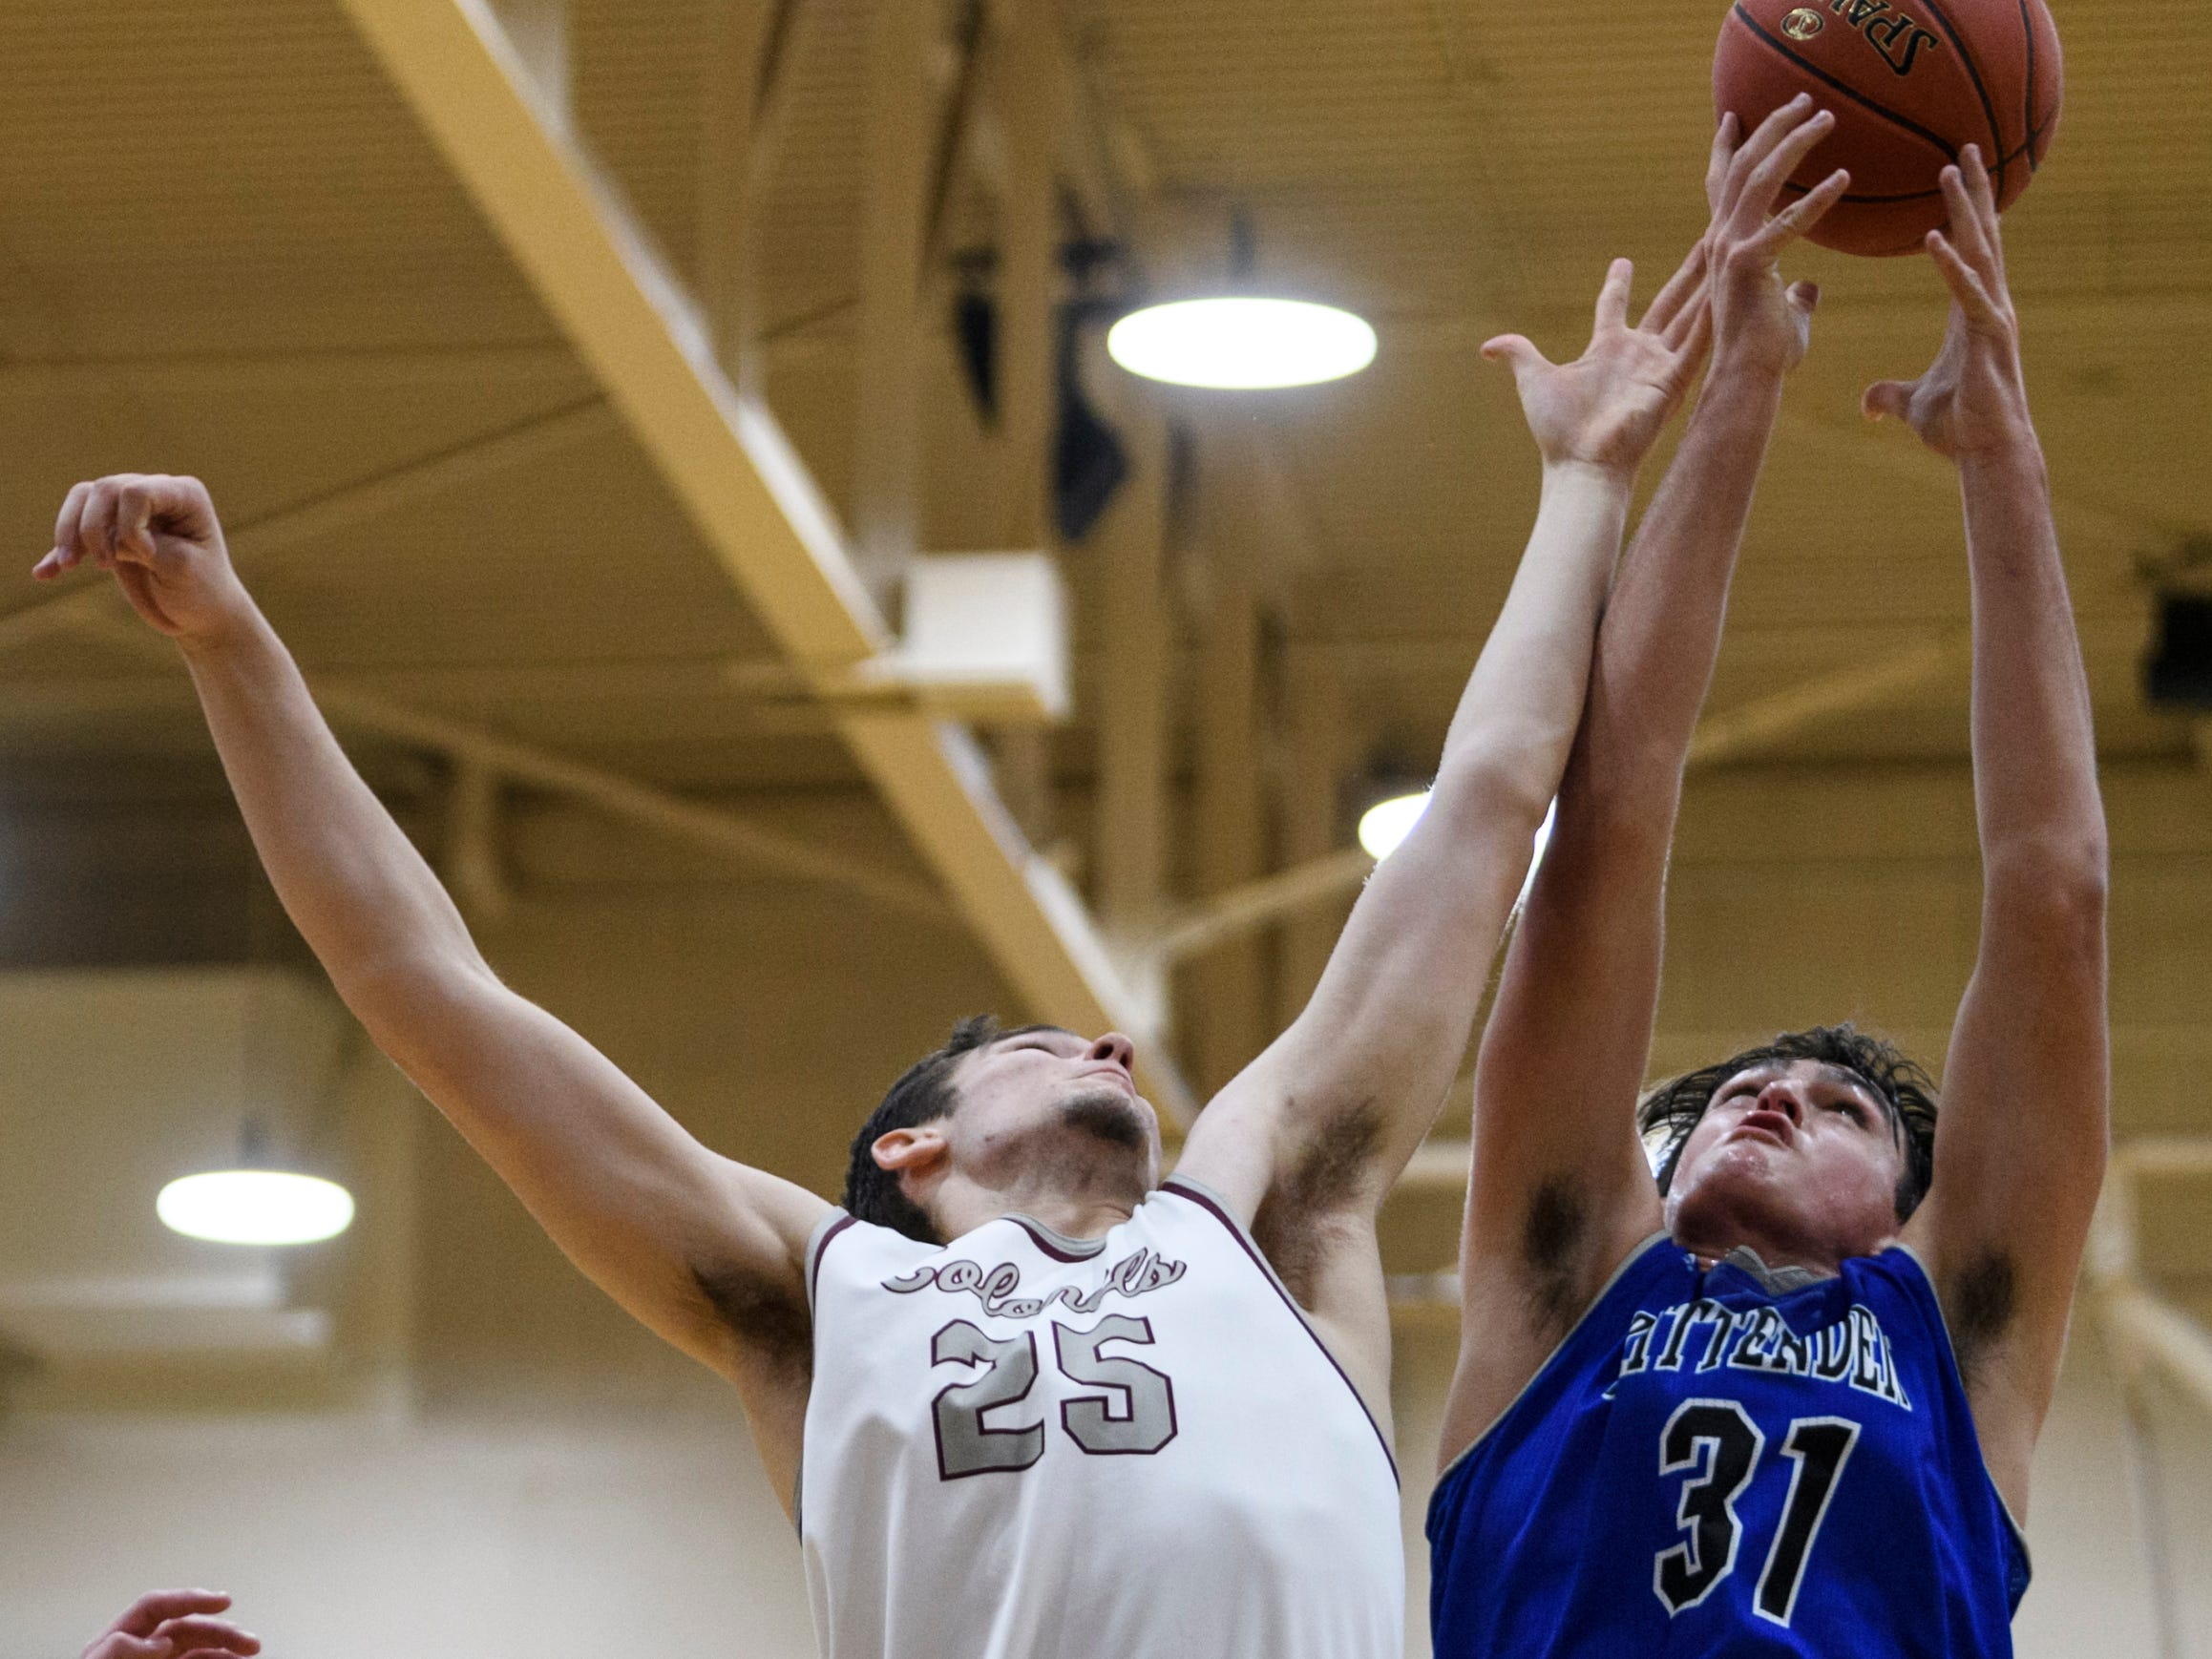 Henderson's Alec Agnew (25) and Crittenden County's Preston Turley (31) fight for the rebound during the game at Henderson County High School in Henderson, Ky., Tuesday, Dec. 18, 2018. The Colonels defeated the Rockets 88-52.